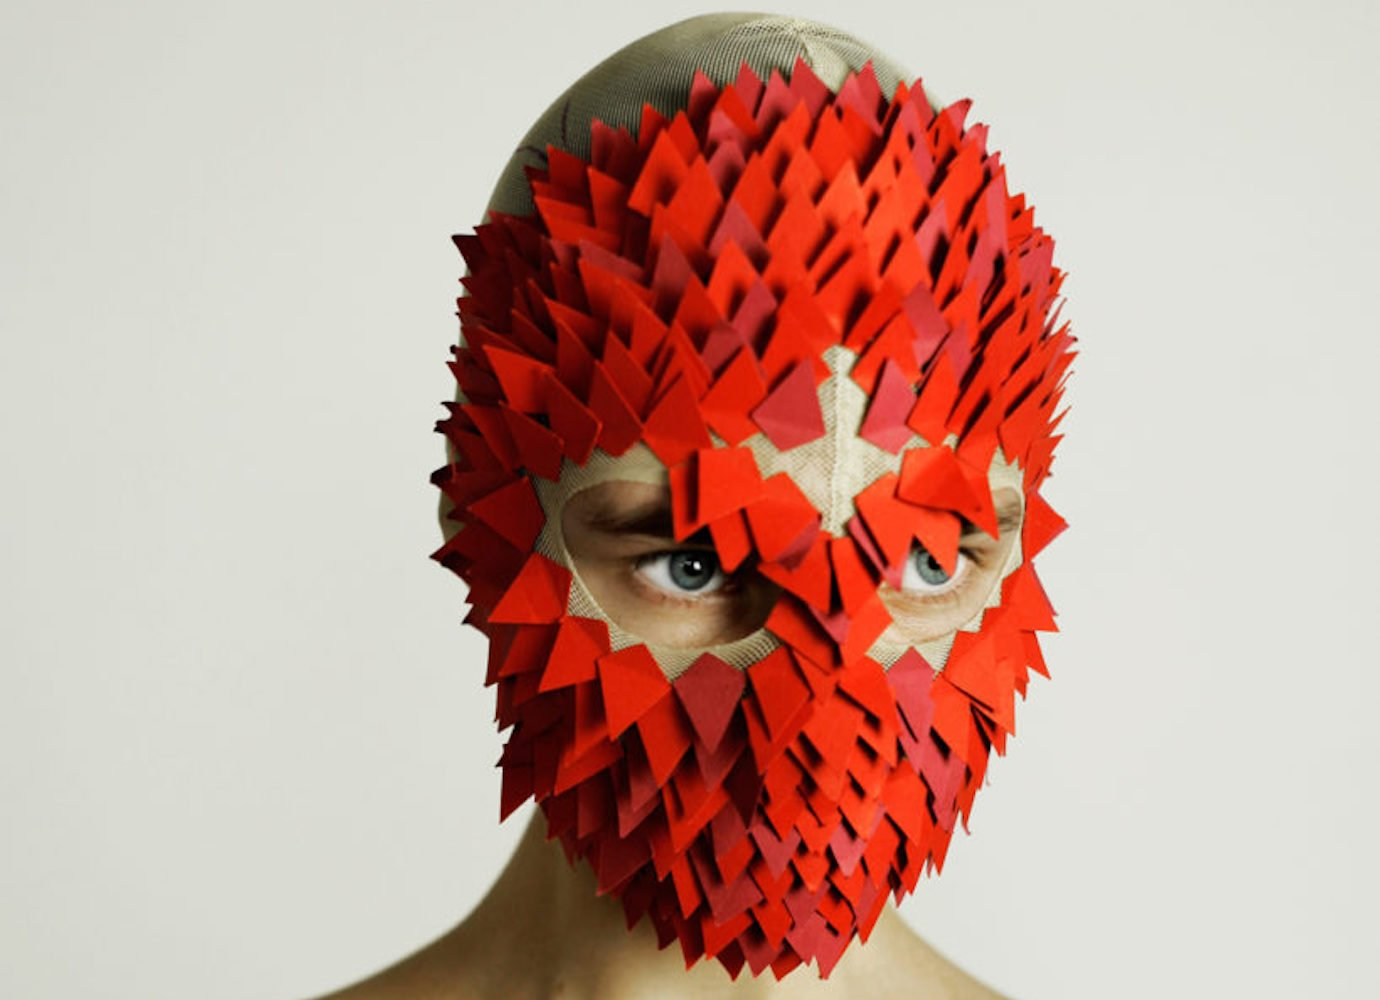 The fashion designer making masks inspired by tech, body parts and Siberian myths